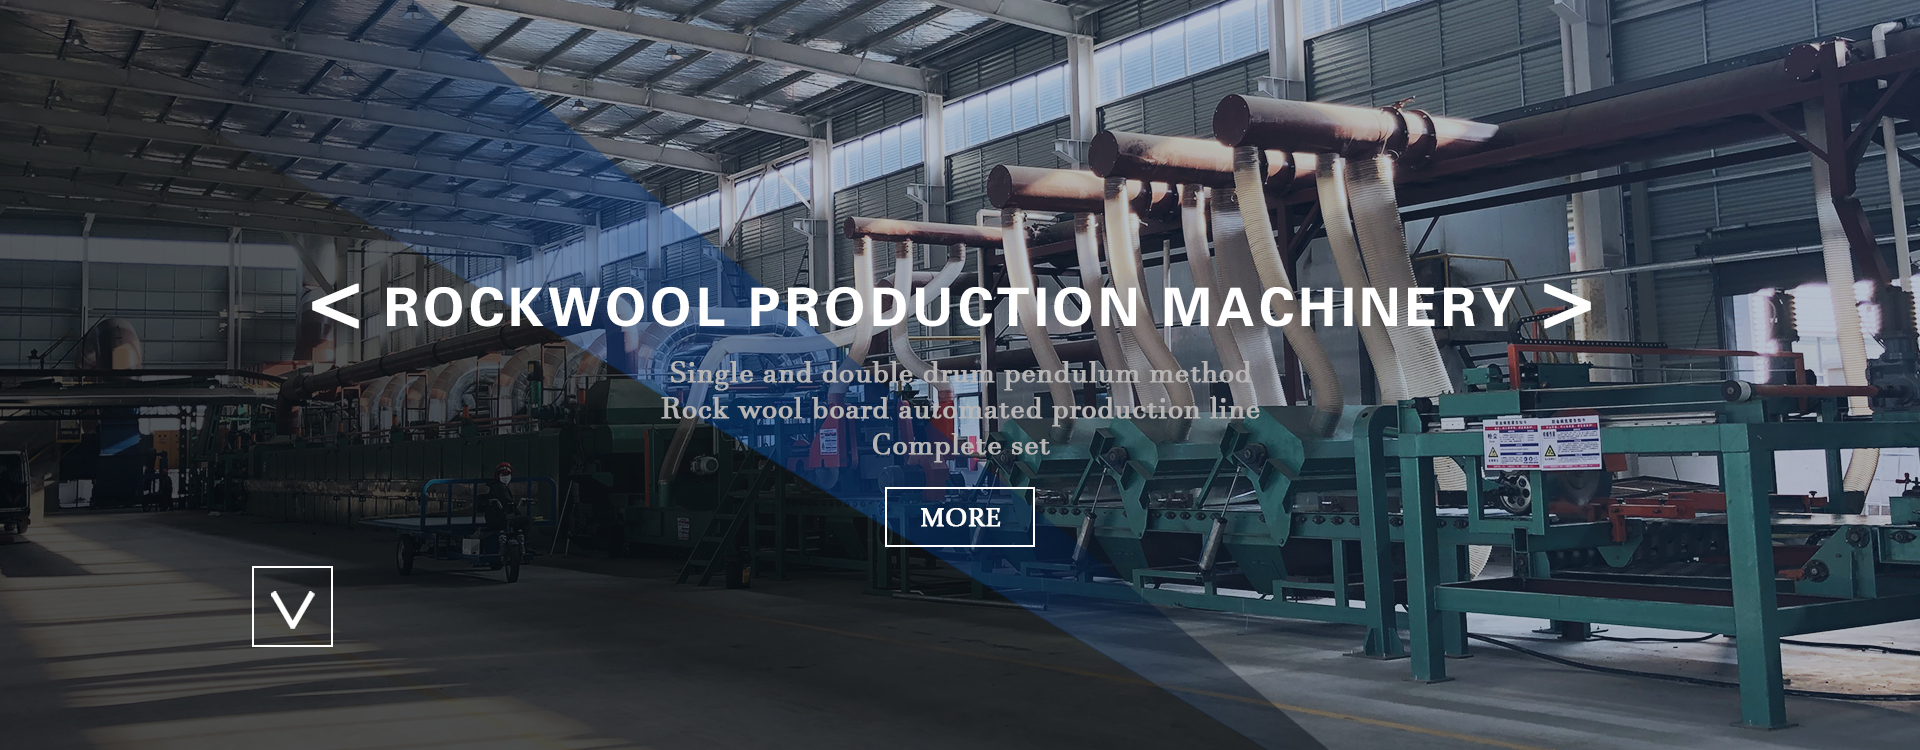 rockwool production machinery